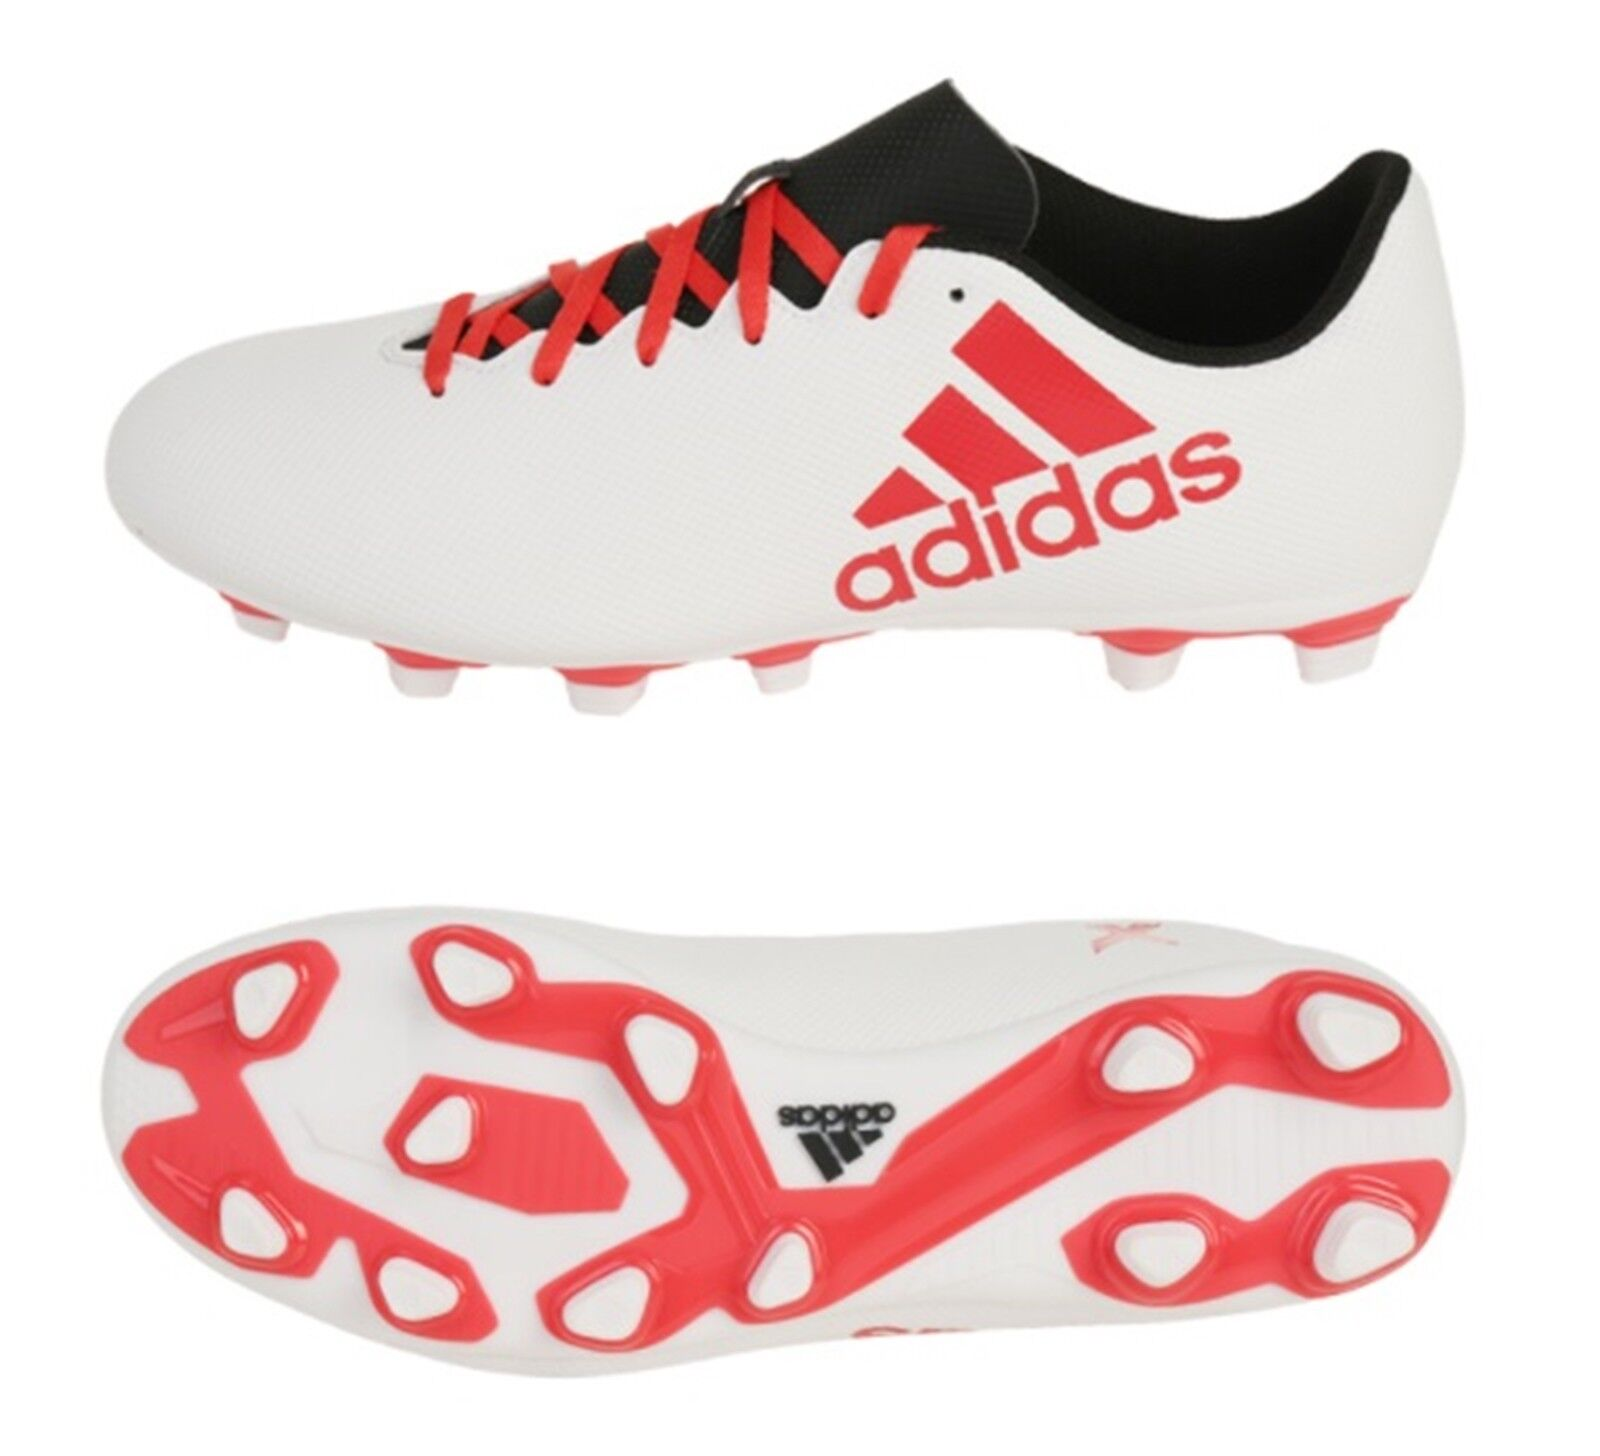 Adidas Men X 17.4 FxG Cleats Soccer White Red Football Futsal shoes Spike CP9196